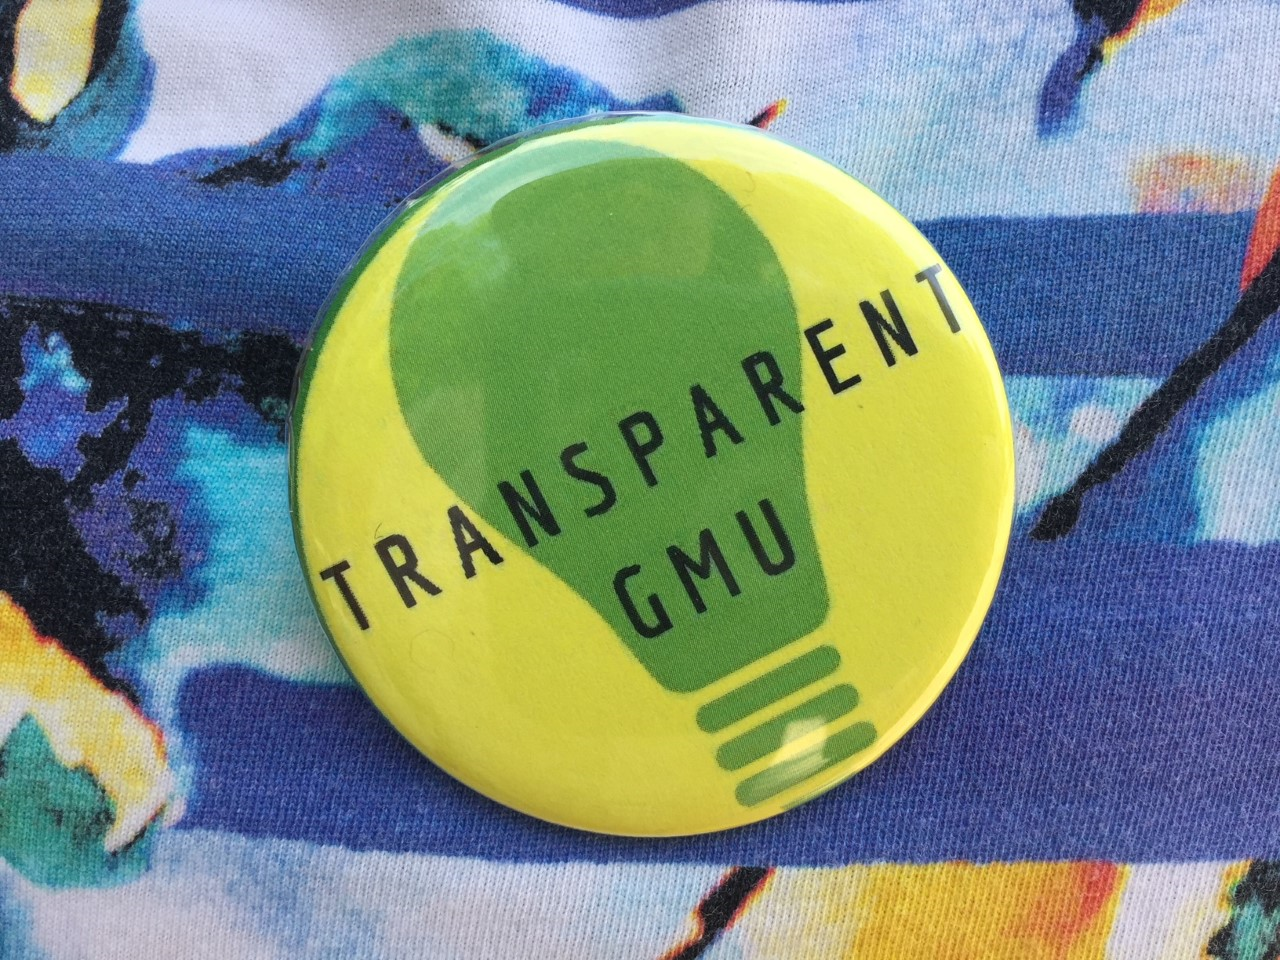 The student-led group Transparent GMU is suing the George Mason University Foundation in an effort to get it to release records of donations and donor agreements. (WTOP/Kristi King)